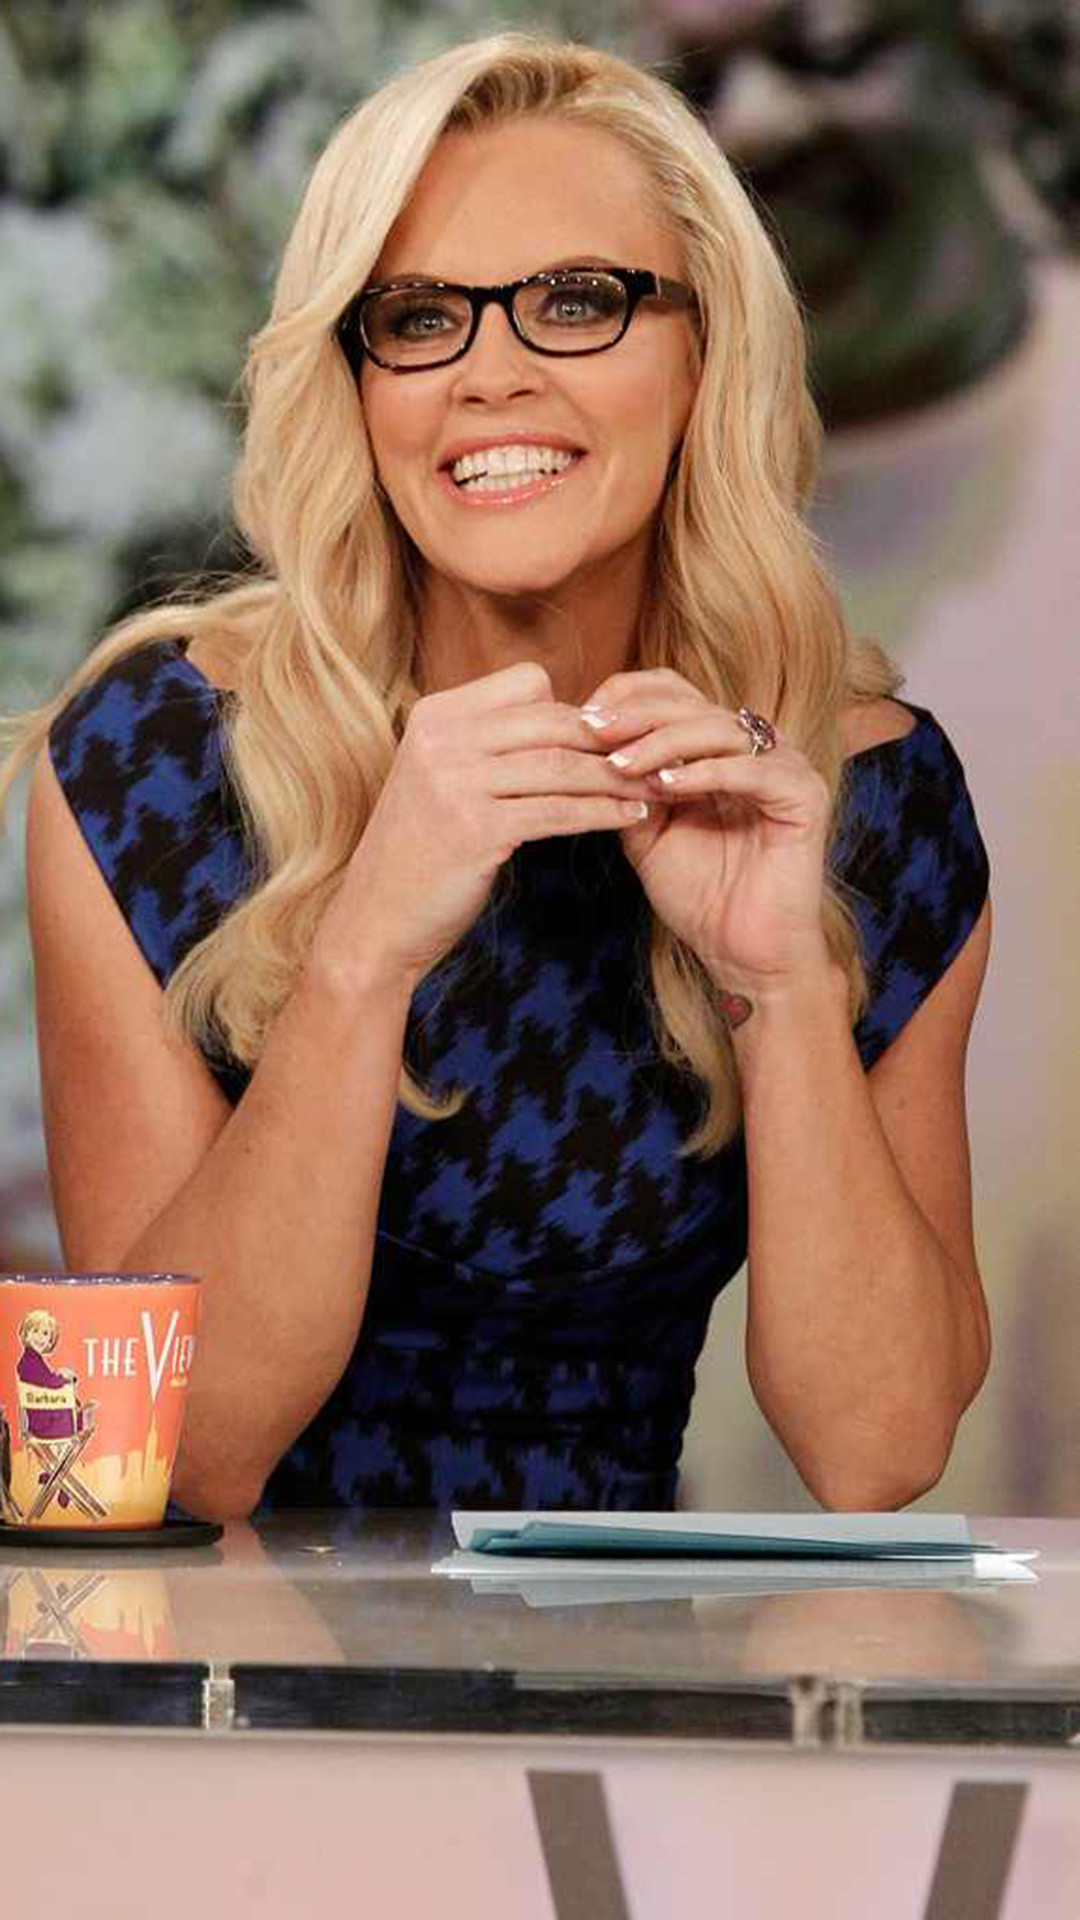 5 Shocking Claims From Jenny McCarthy About Barbara Walters and The View